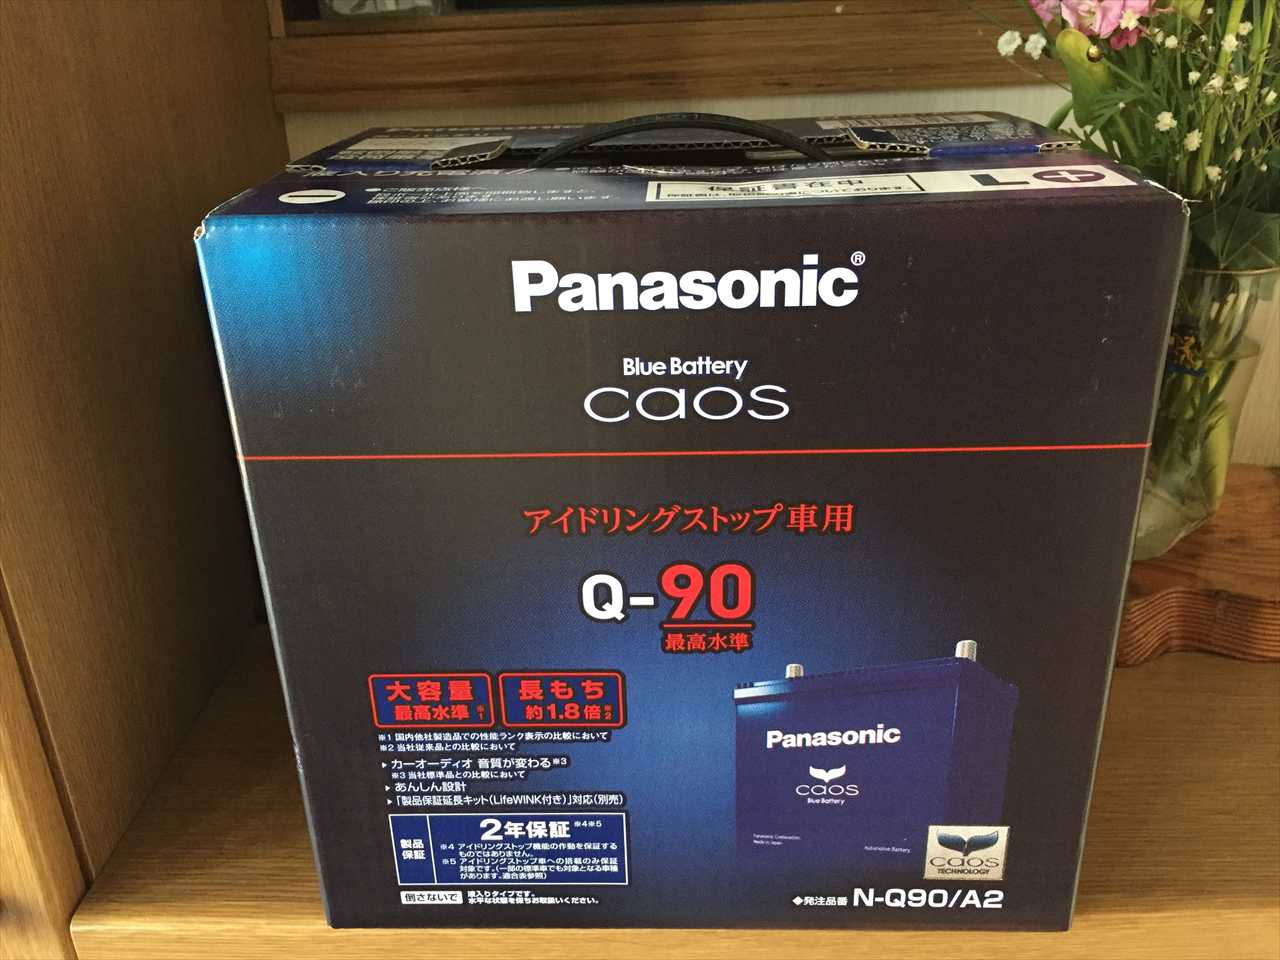 Panasonic Blue Battery caos N-Q90/A2